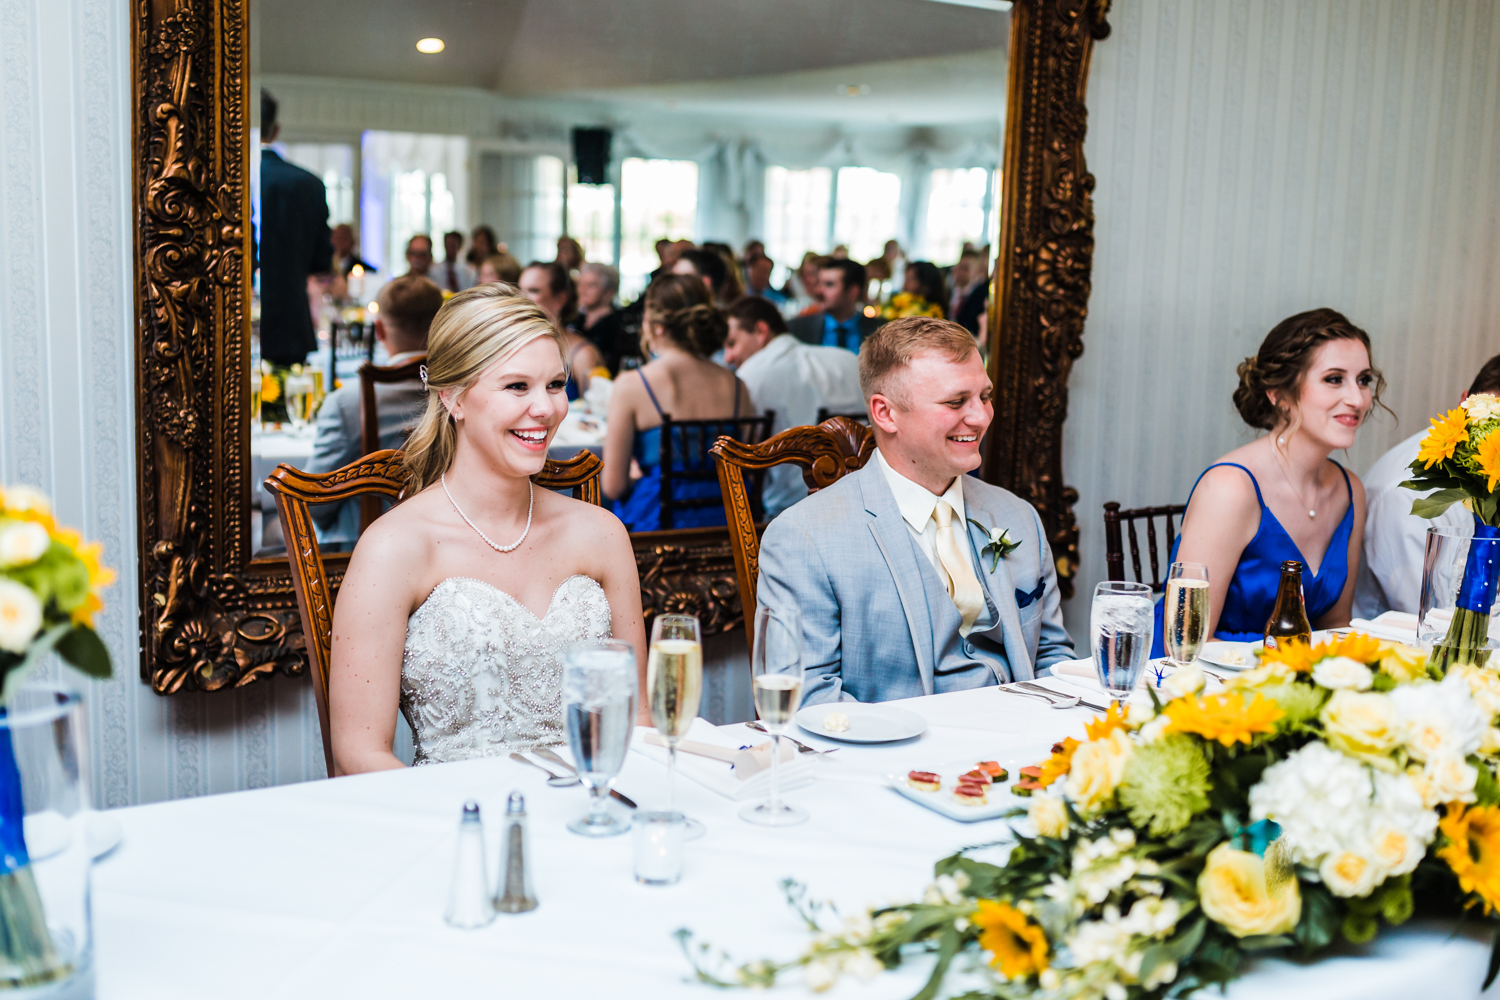 bride and groom lauging while father of bride gives a welcome speech and toast - carroll county md wedding photographer